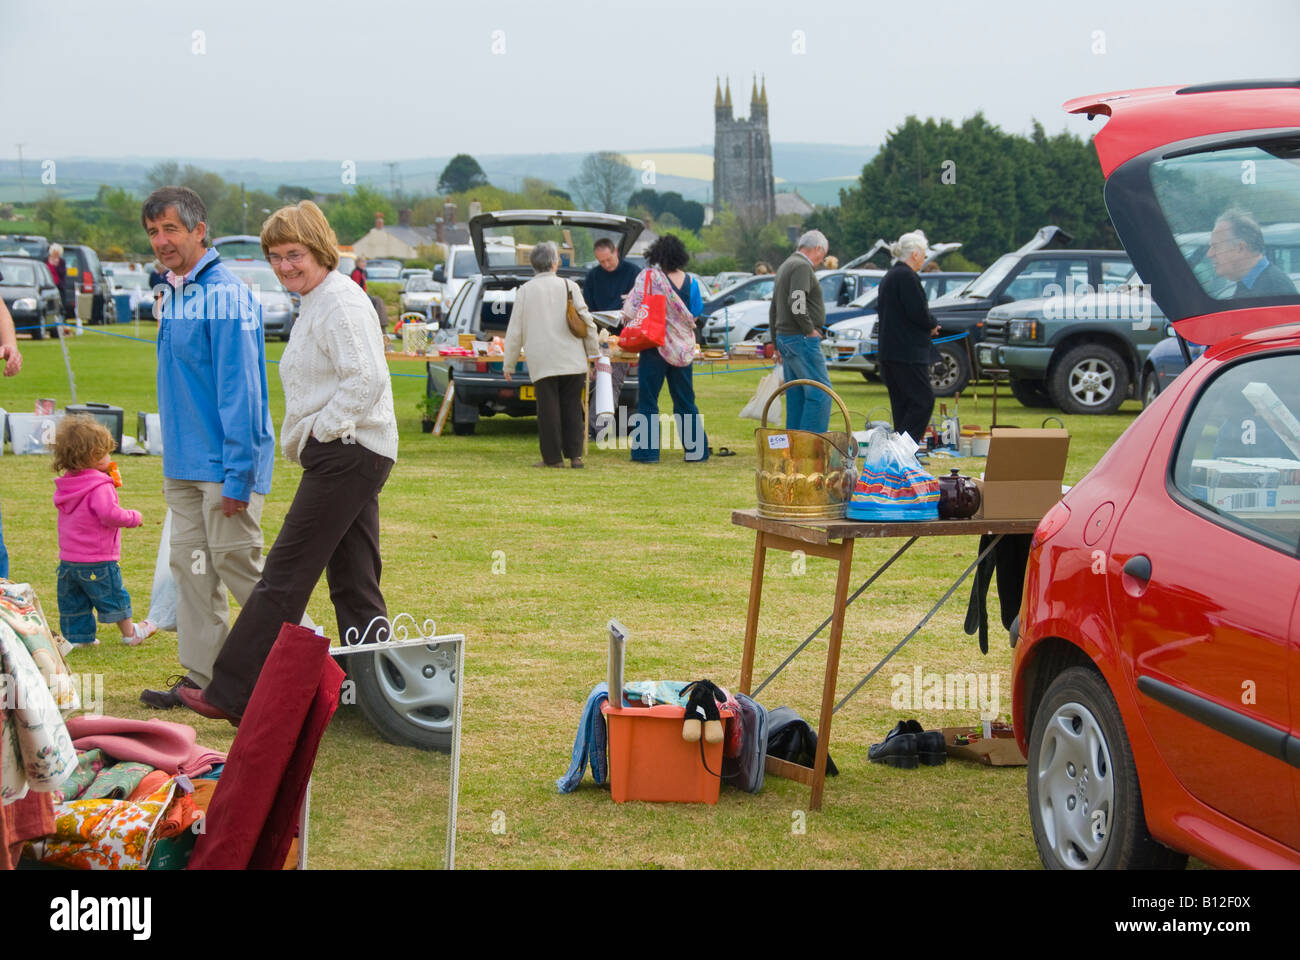 People at a car boot sale in England - Stock Image